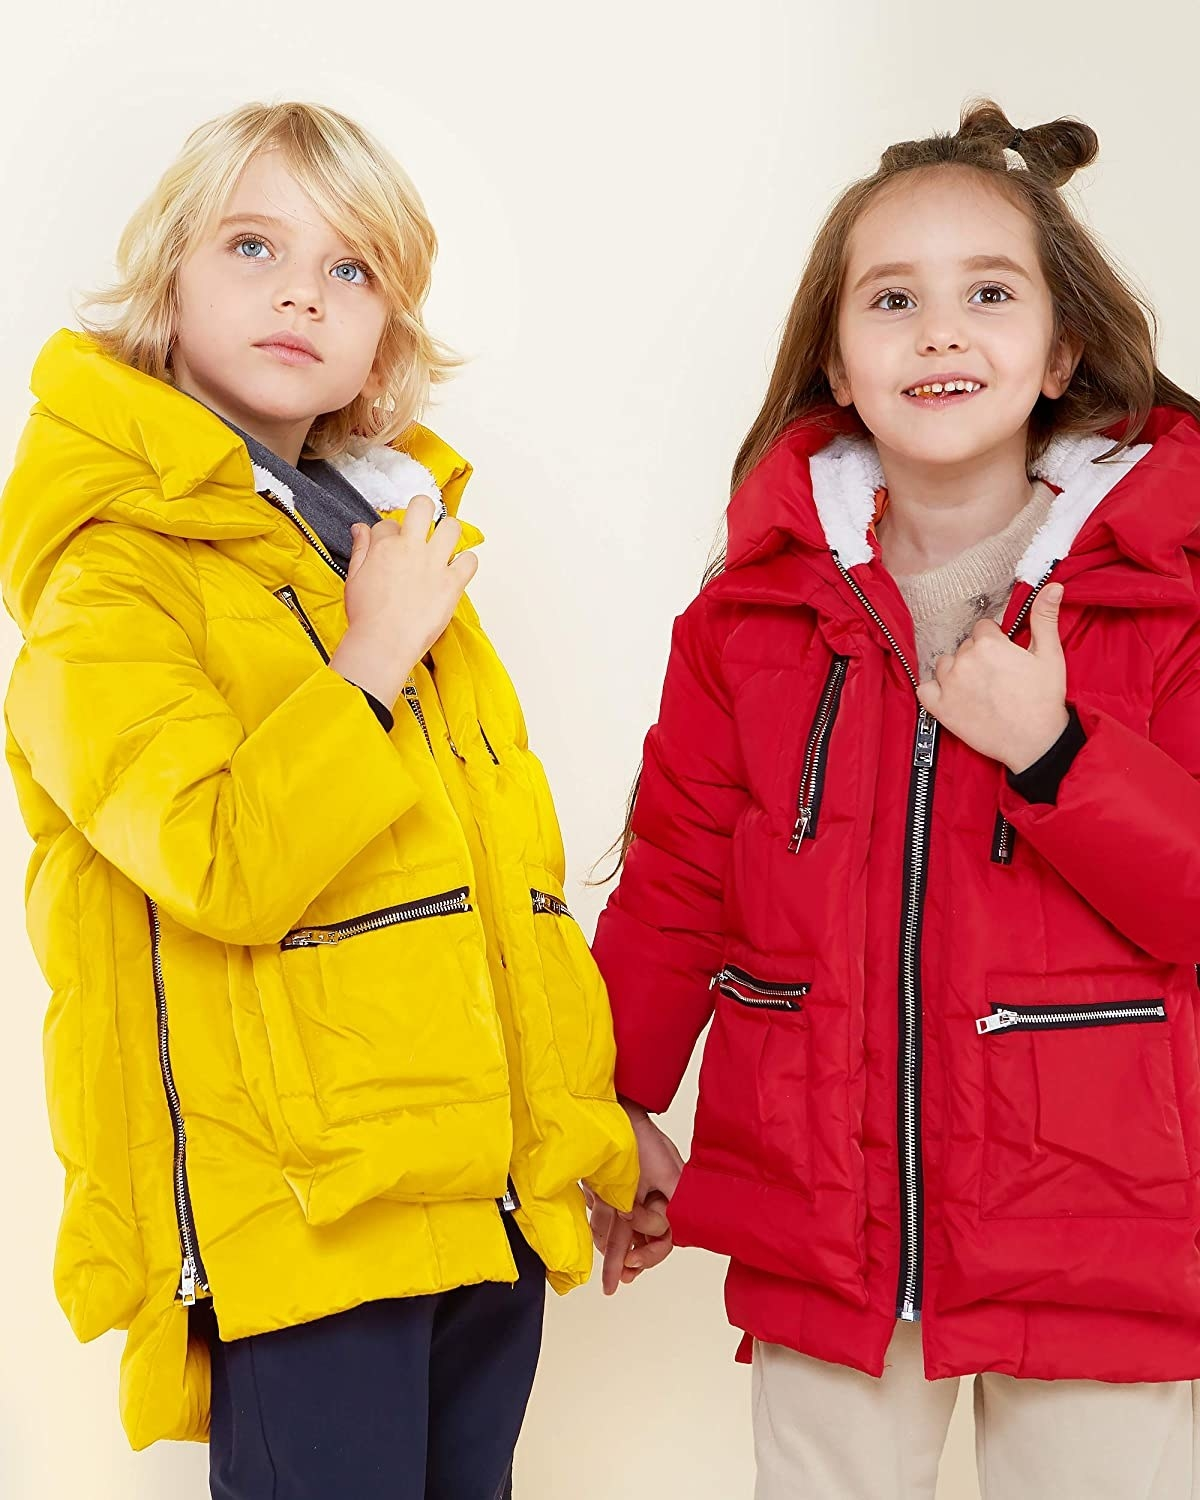 Two kids, one in the yellow coat, one in the red